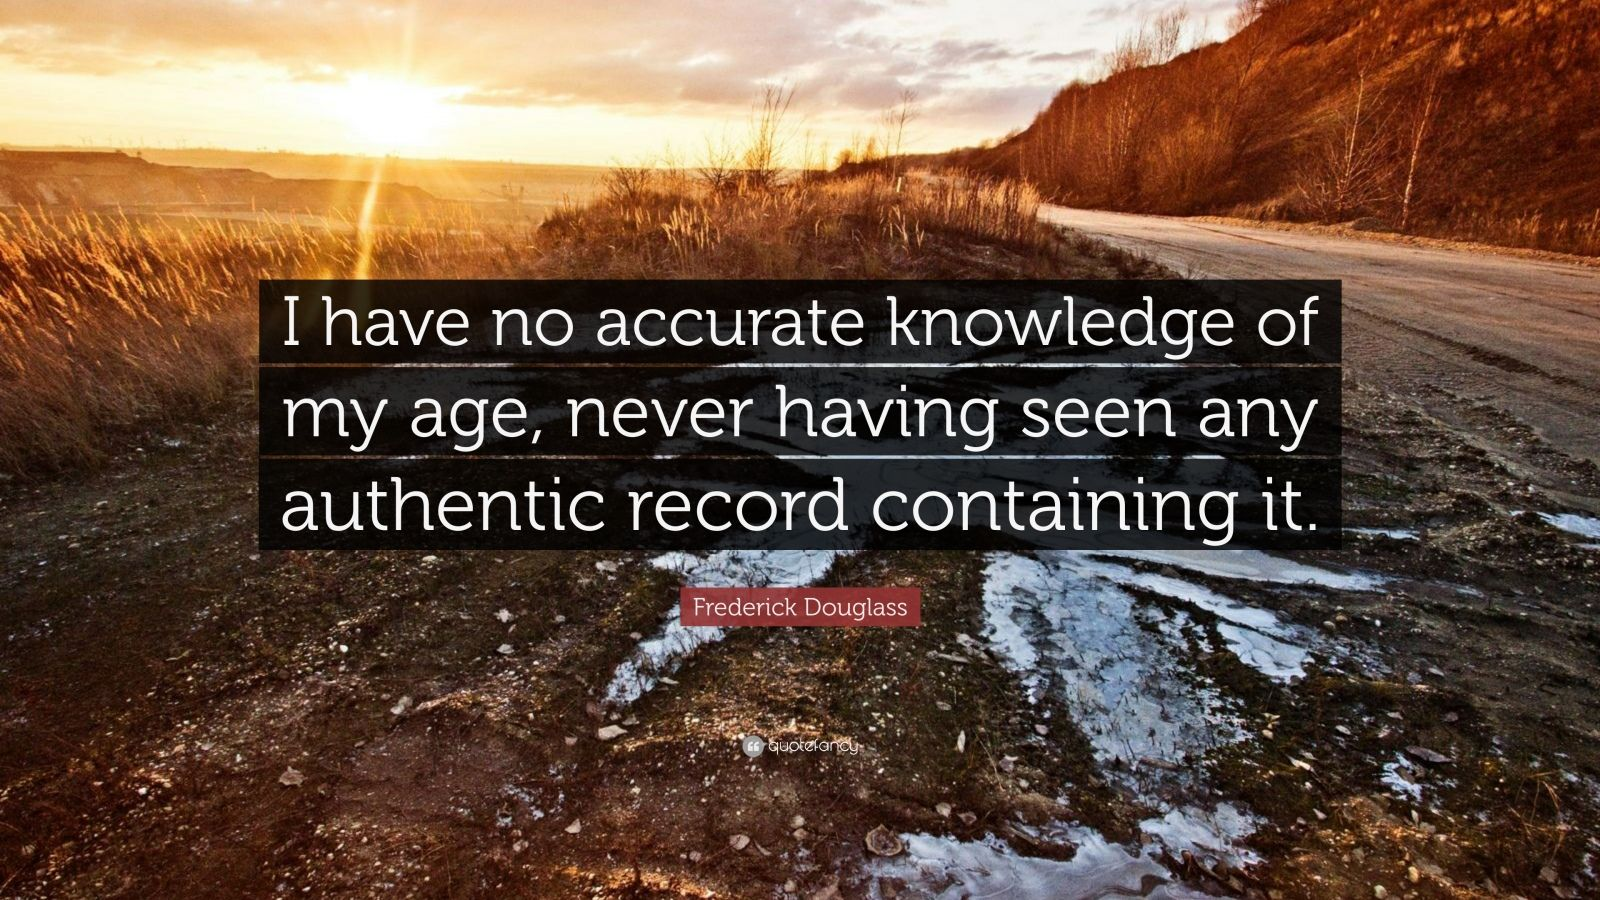 """Frederick Douglass Quote: """"I have no accurate knowledge of my age, never having seen any authentic record containing it."""""""